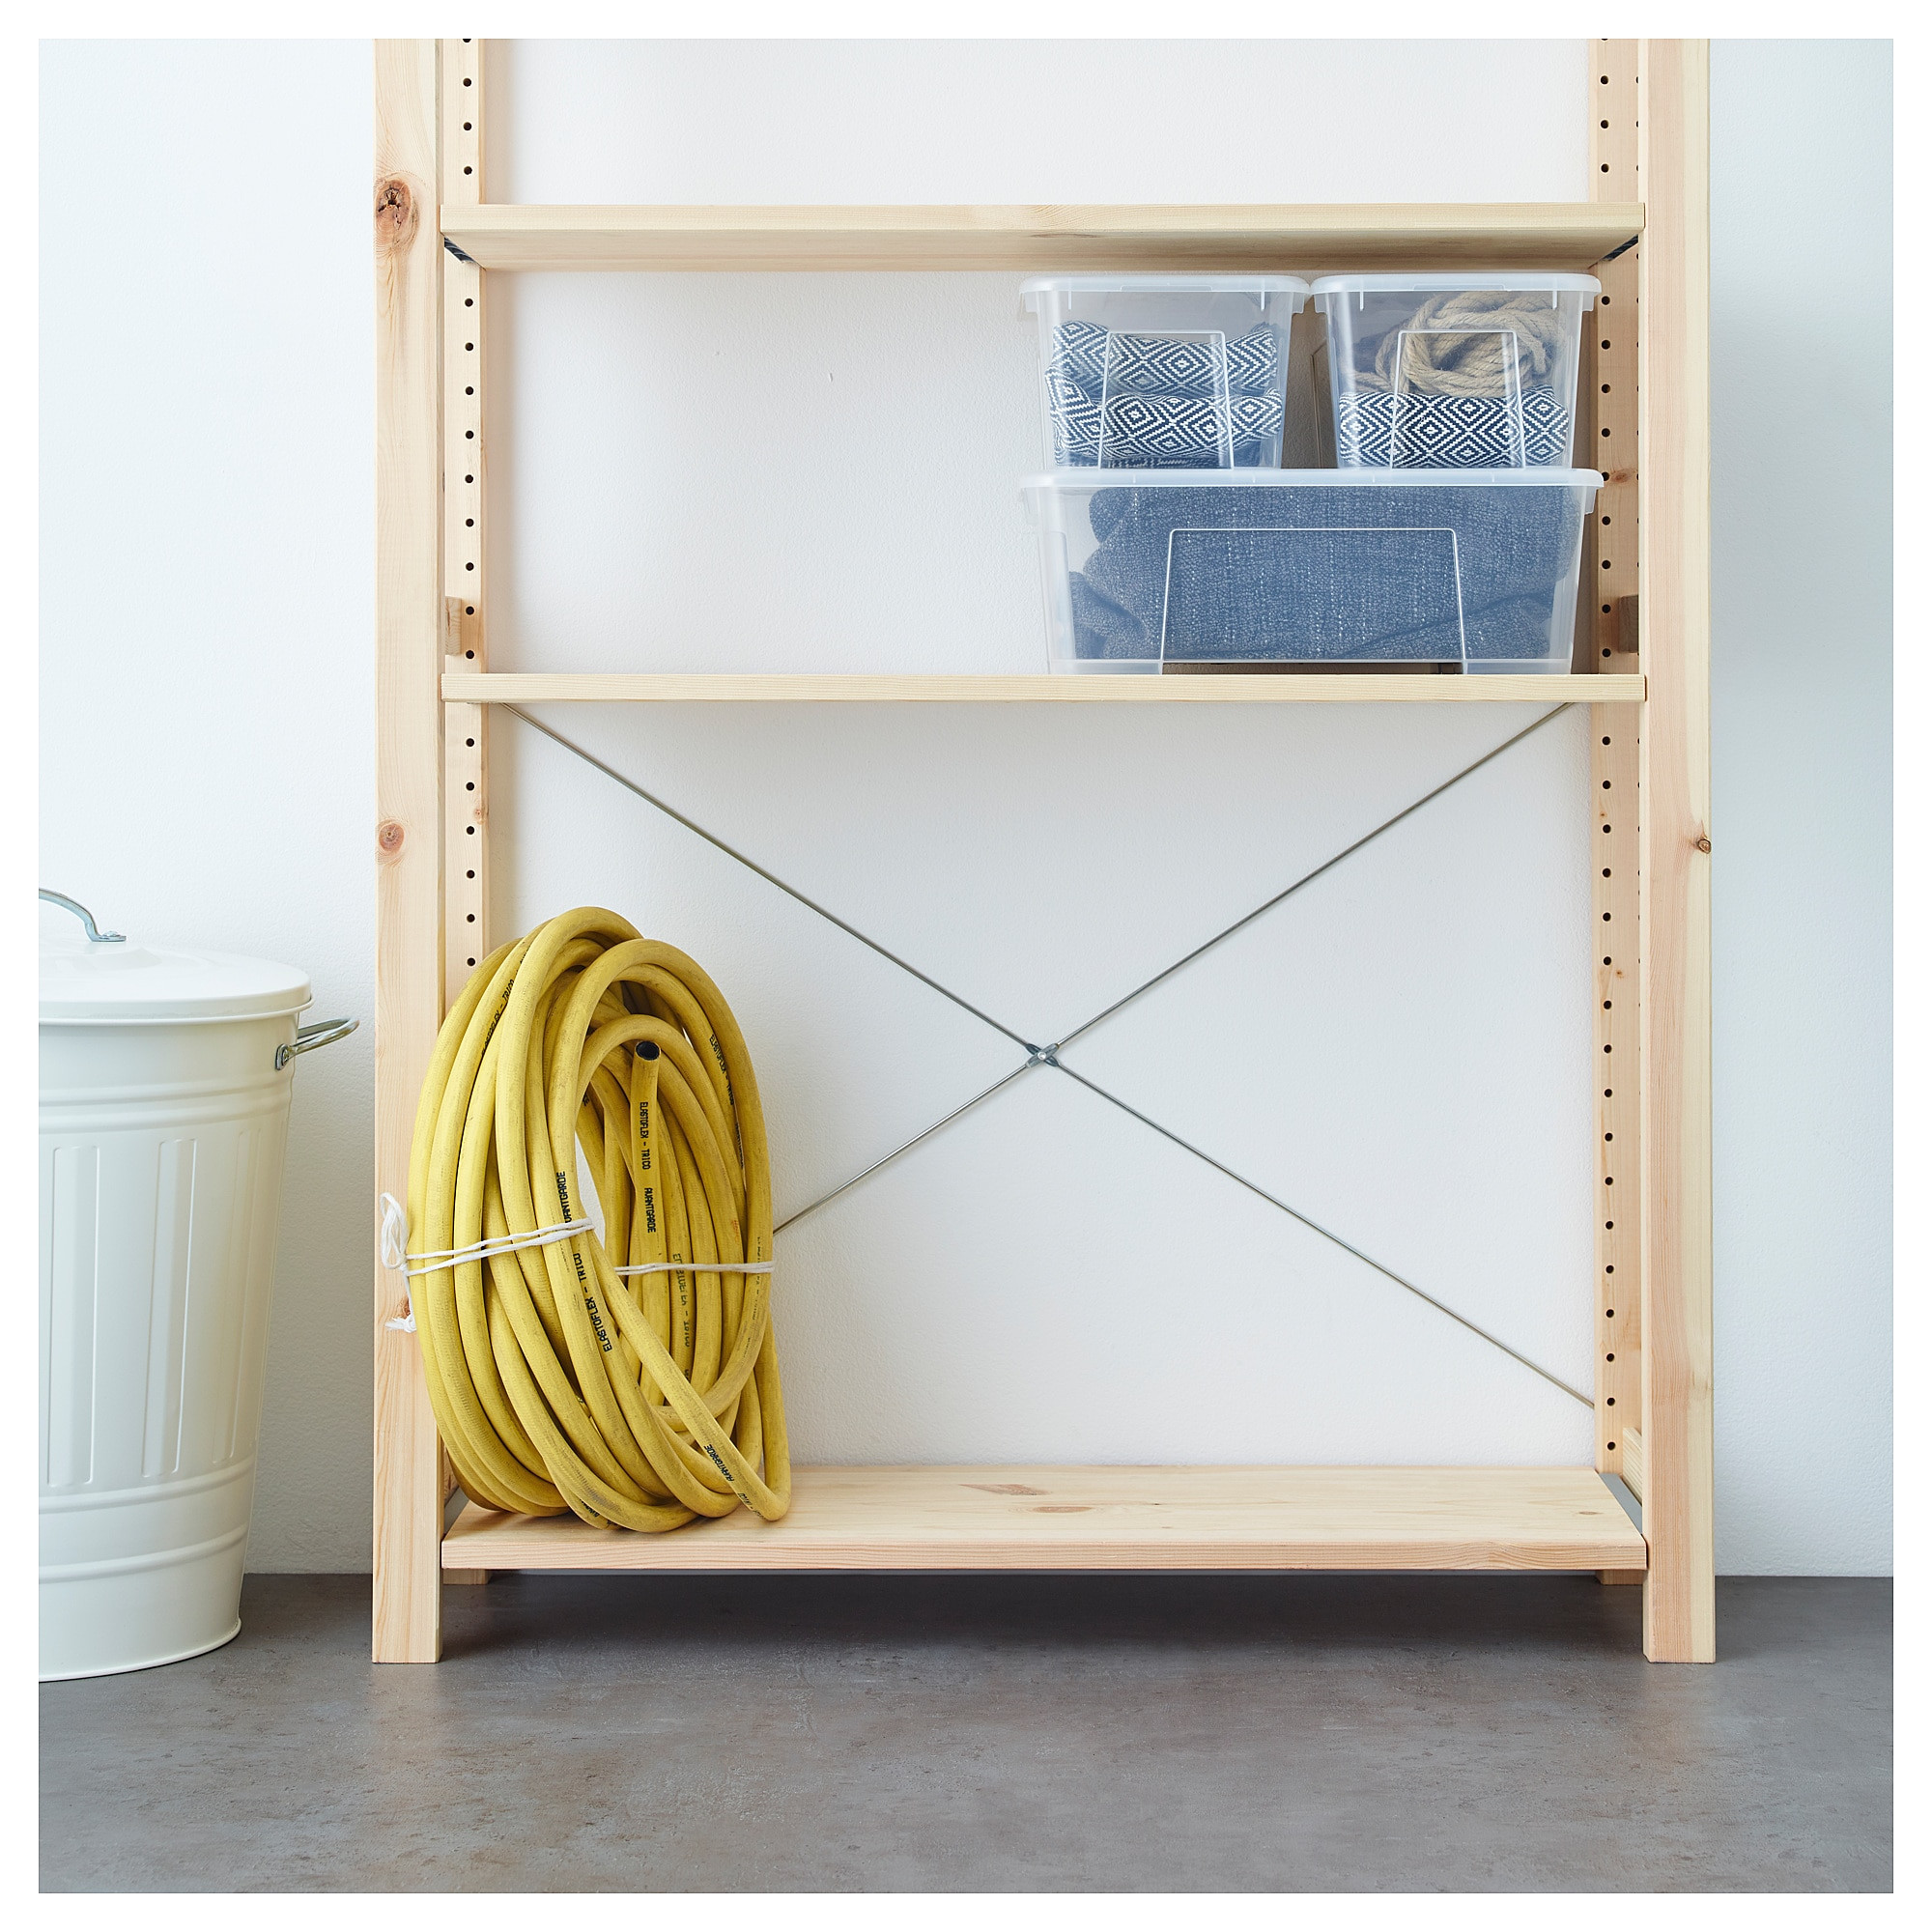 ikea ivar shelving unit you can move shelves and adapt spacing to suit your needs